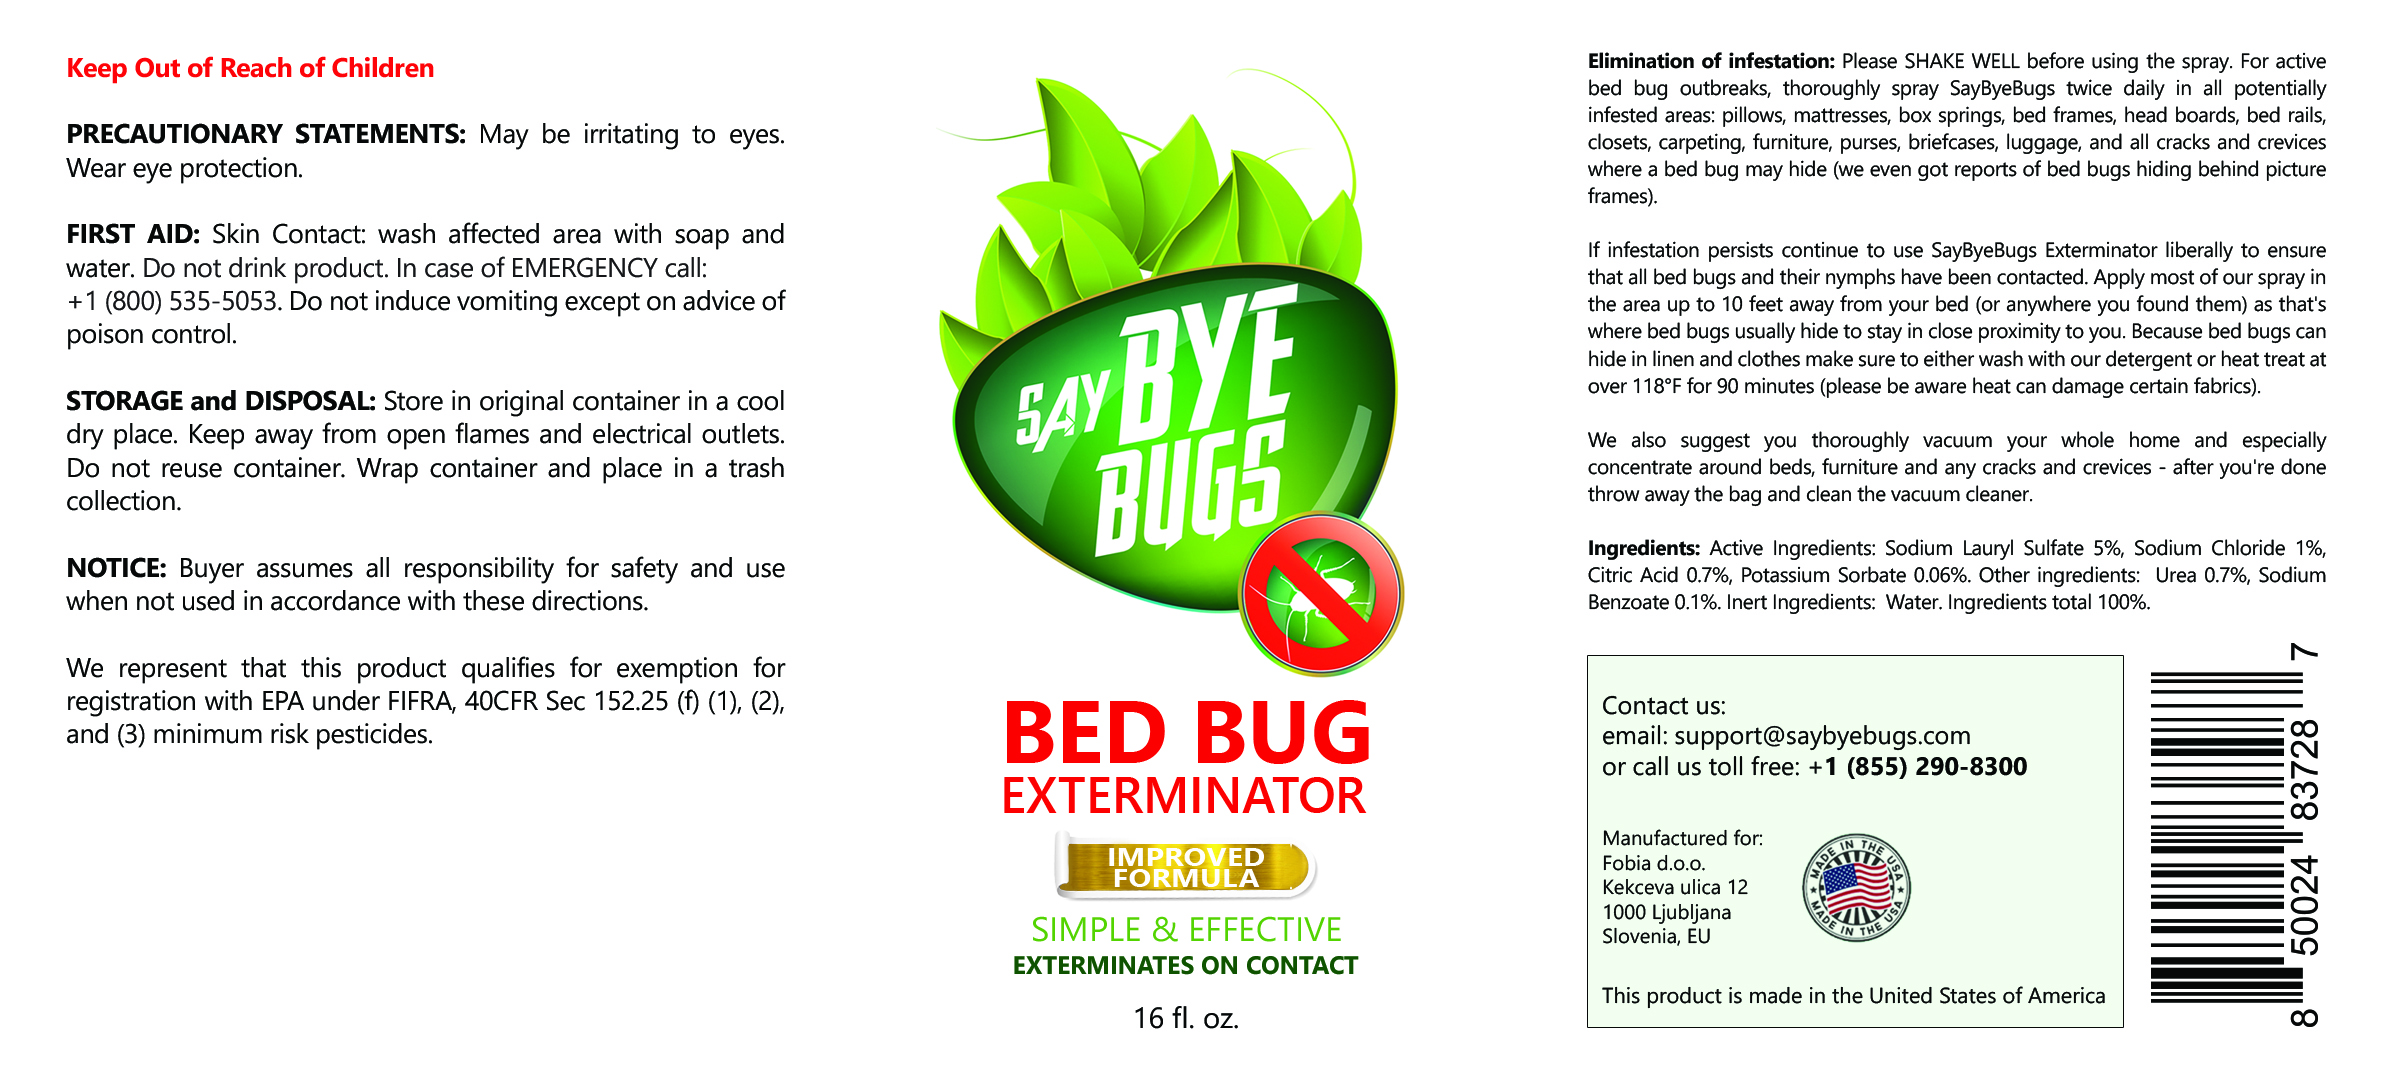 saybyebugs - get rid of bed bugs